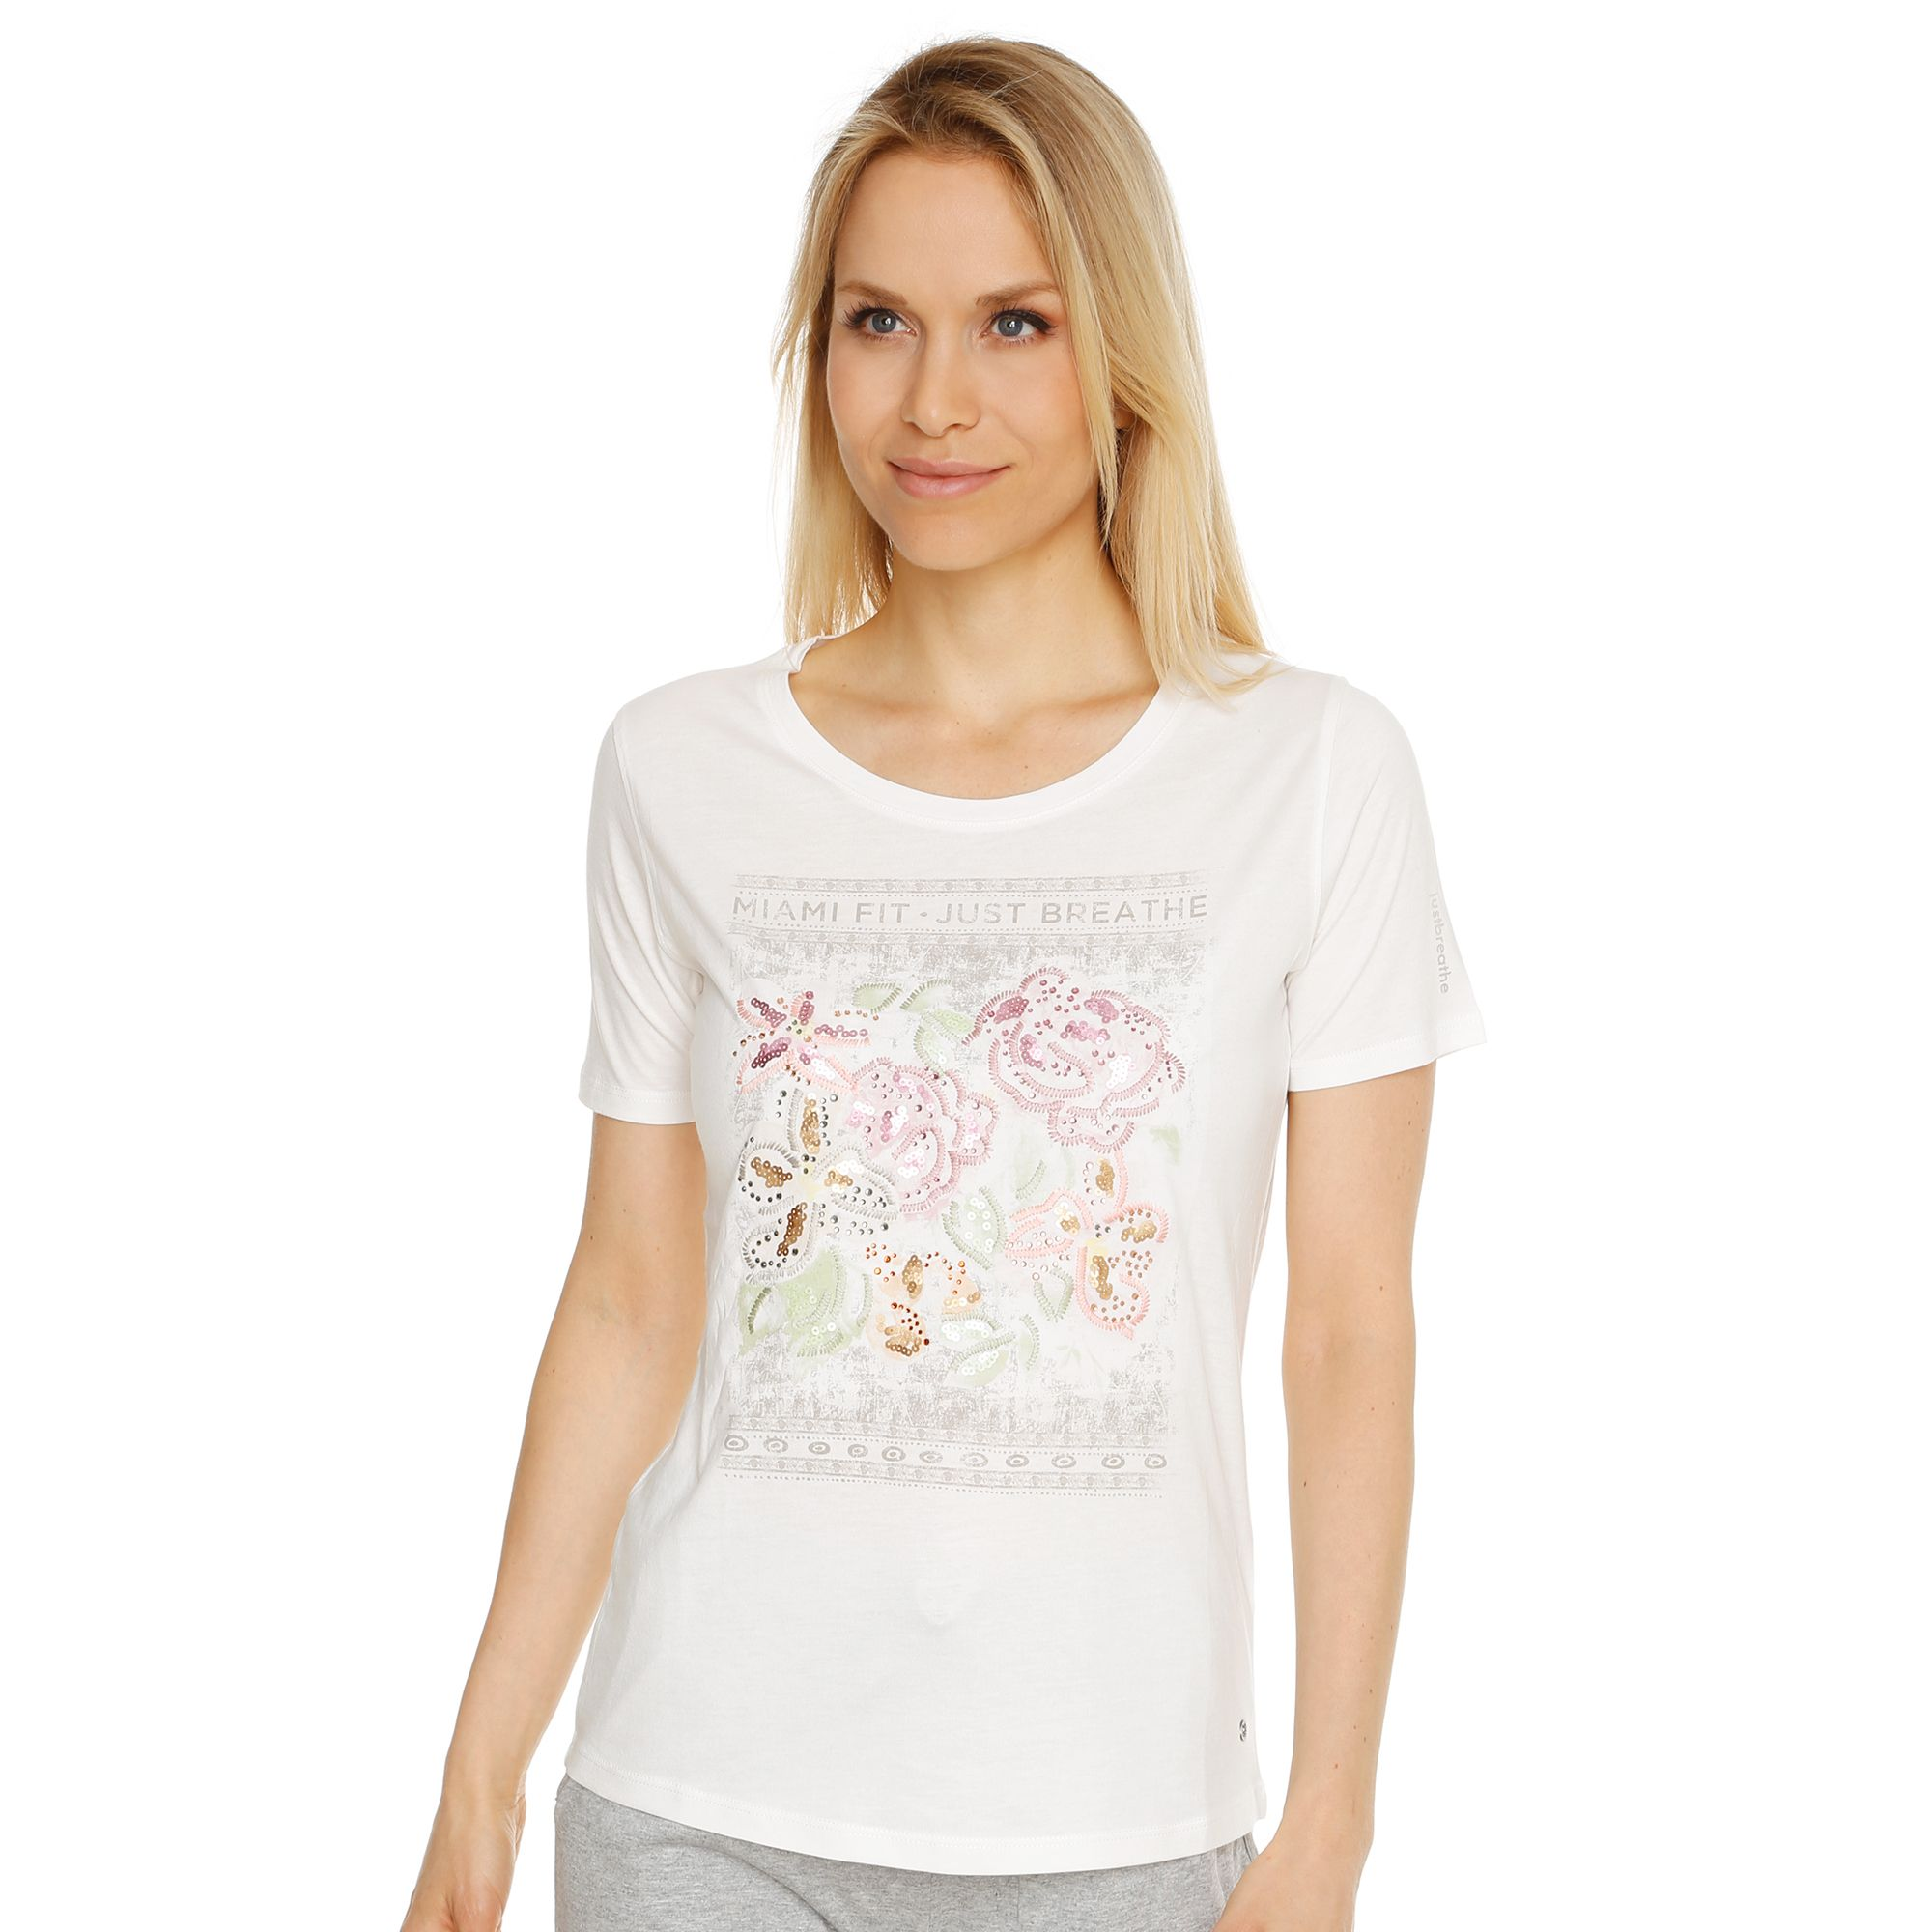 Barbara Becker Kollektion Barbara Becker Miami Fit Jerseyshirt 1 2 Arm Paillettendetail Qvc De